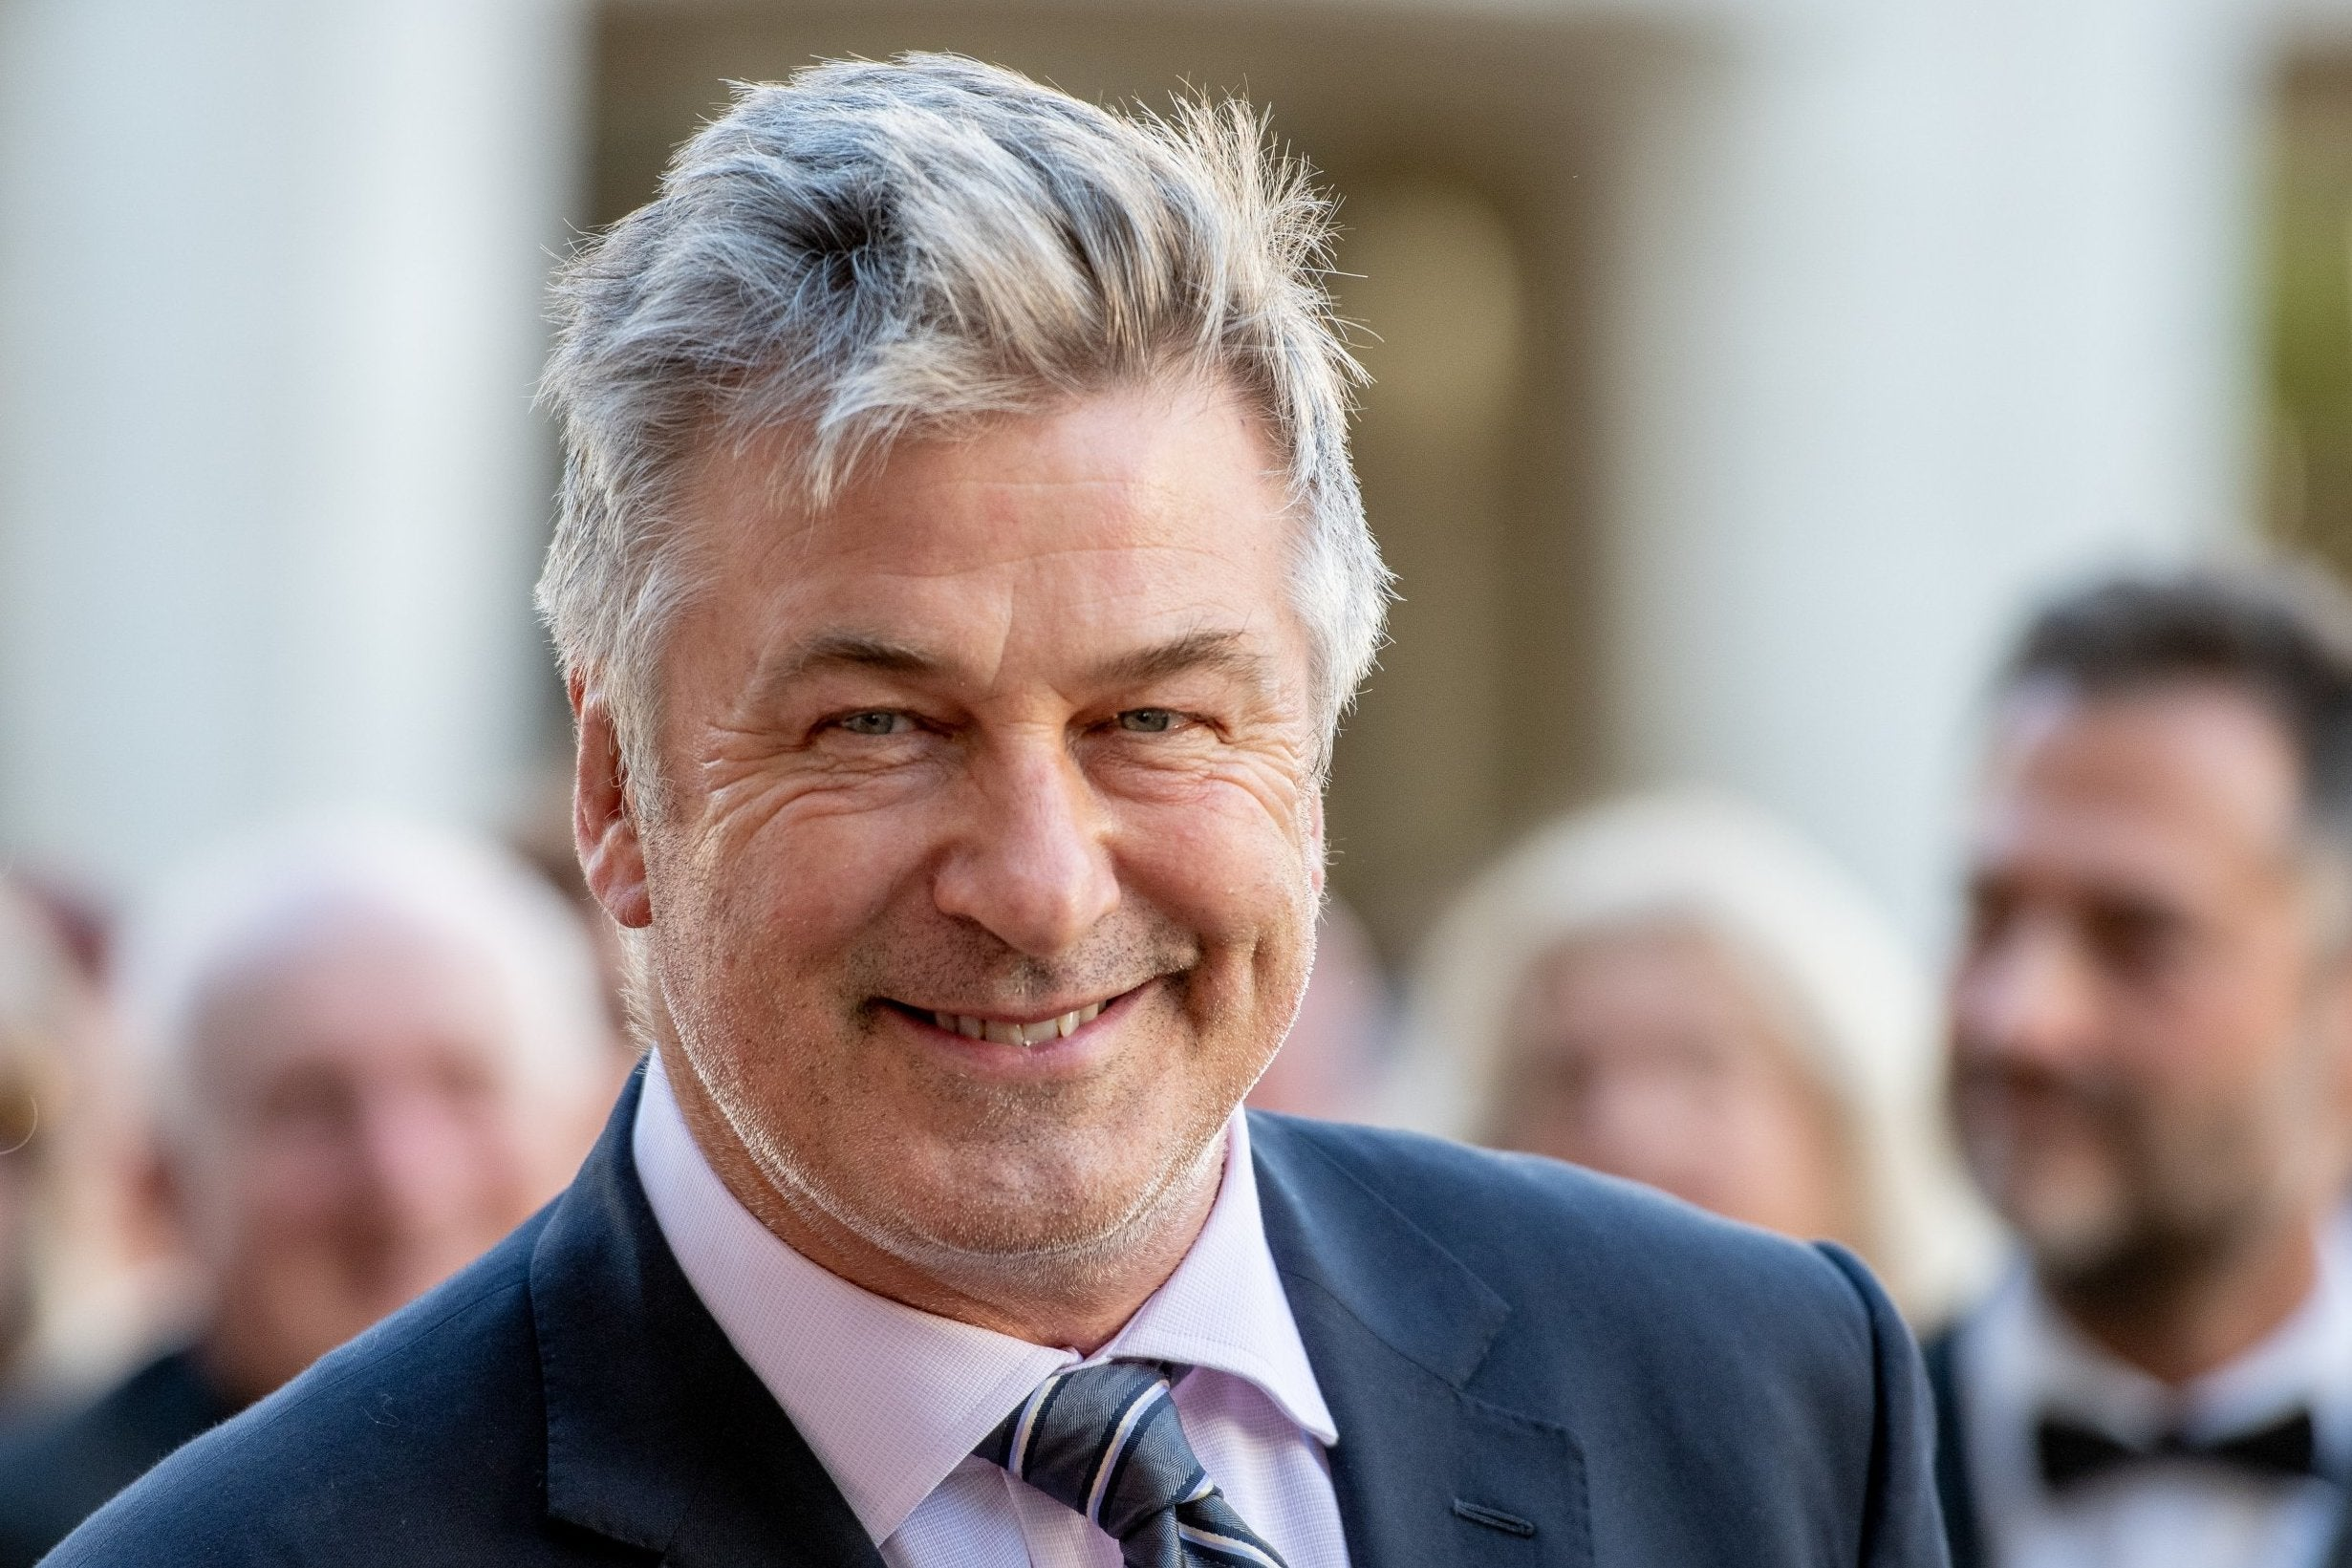 Alec Baldwin wants to leave New York due to allegations of homophobia 02/24/2014 24